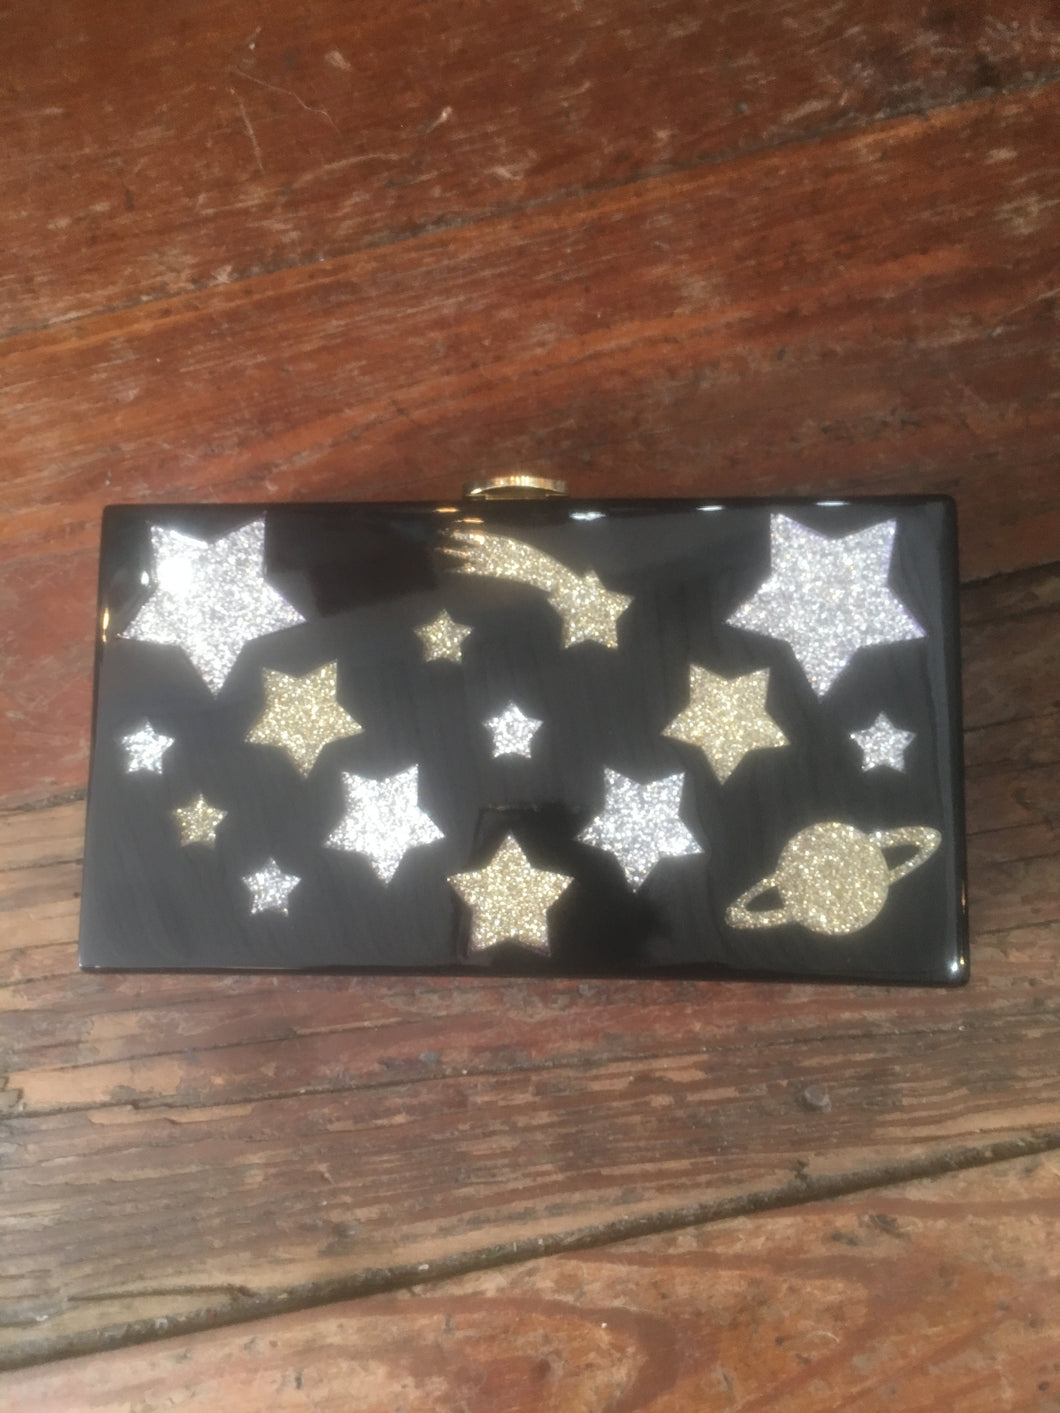 High end Stars & Moon Clutch Judith Leiber-esque